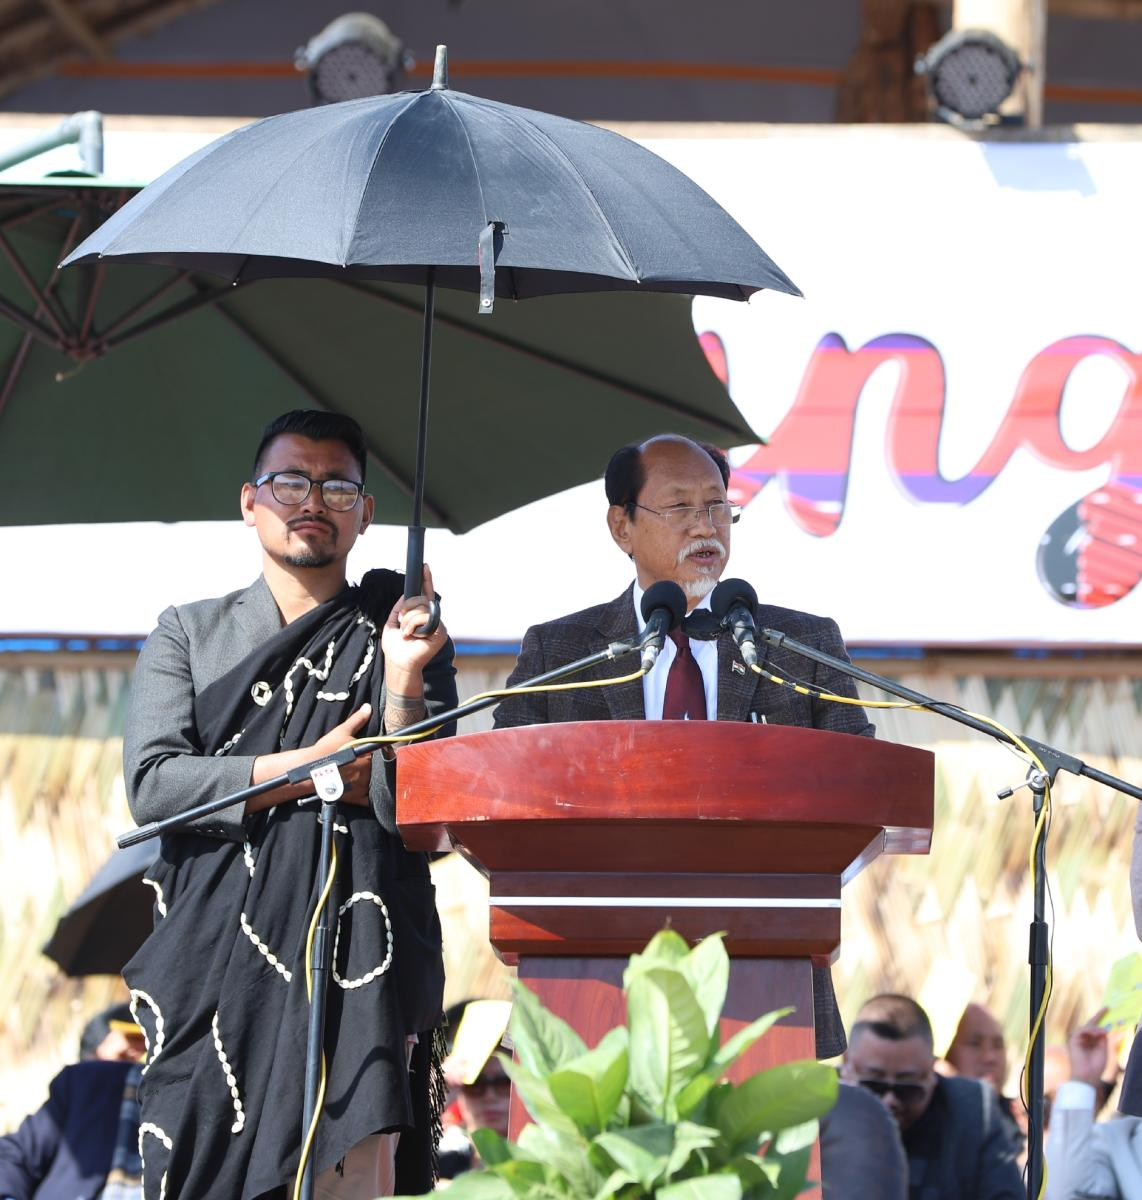 Nagaland Chief Minister Neiphiu Rio has written to Home Minister Rajnath Singh, saying the citizenship bill is not applicable to the state as it is protected under Article 371 (A) of the Constitution. File photo